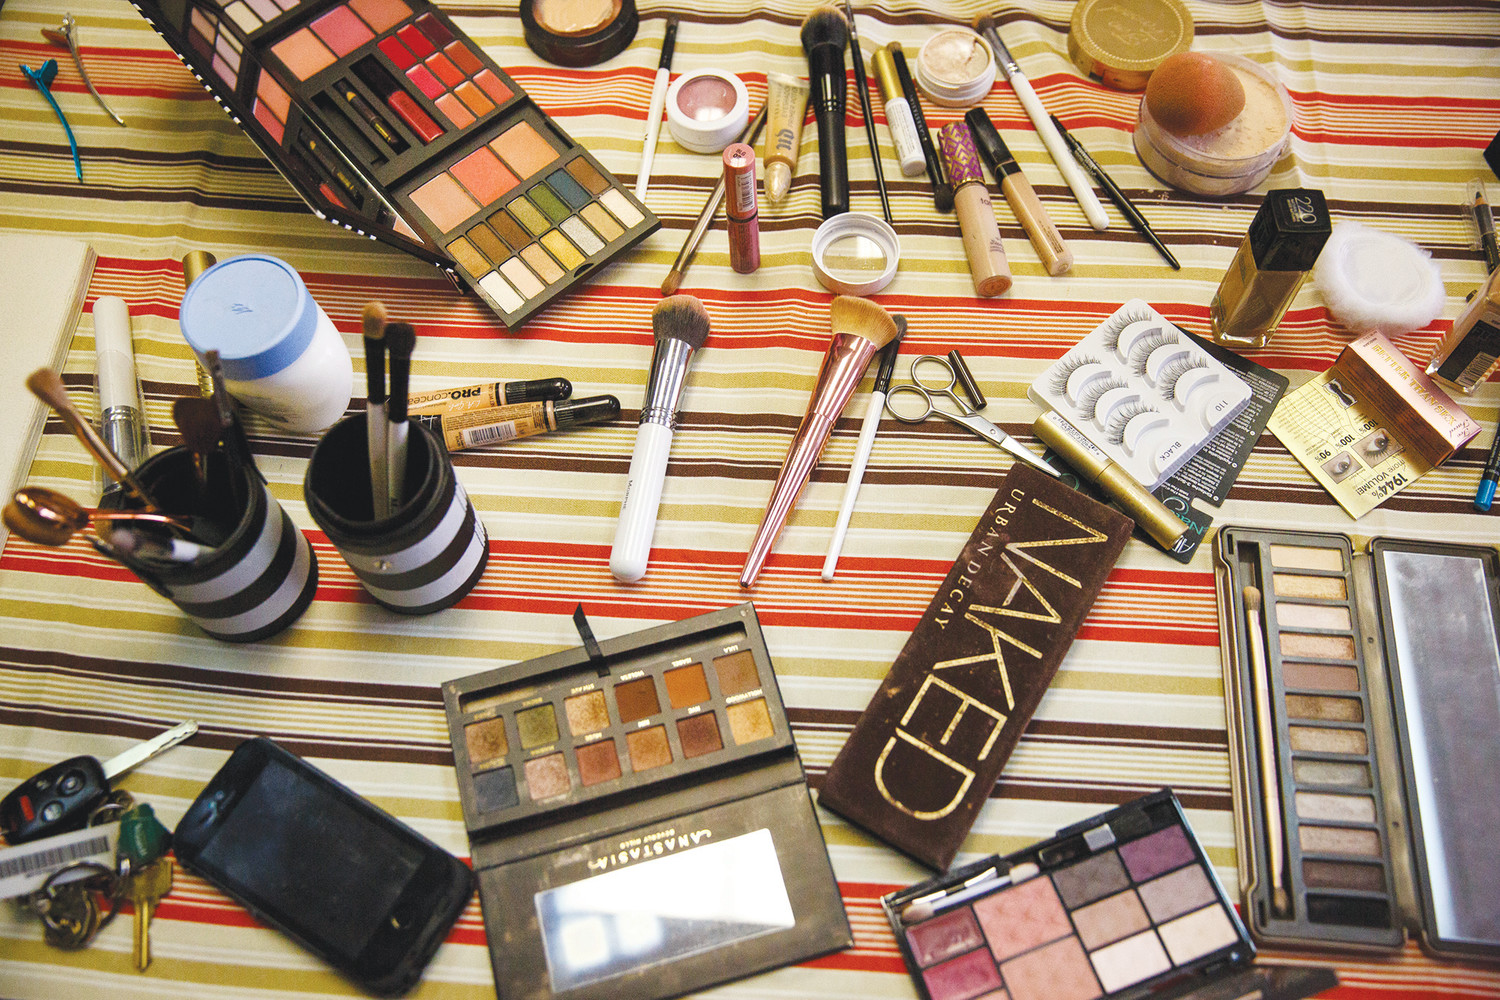 An array of makeup items sit in the front lobby of the Answers women's organization in Keystone Heights during the free hair and makeup initiative hosted by the organization prior to the Keystone Heights High prom.